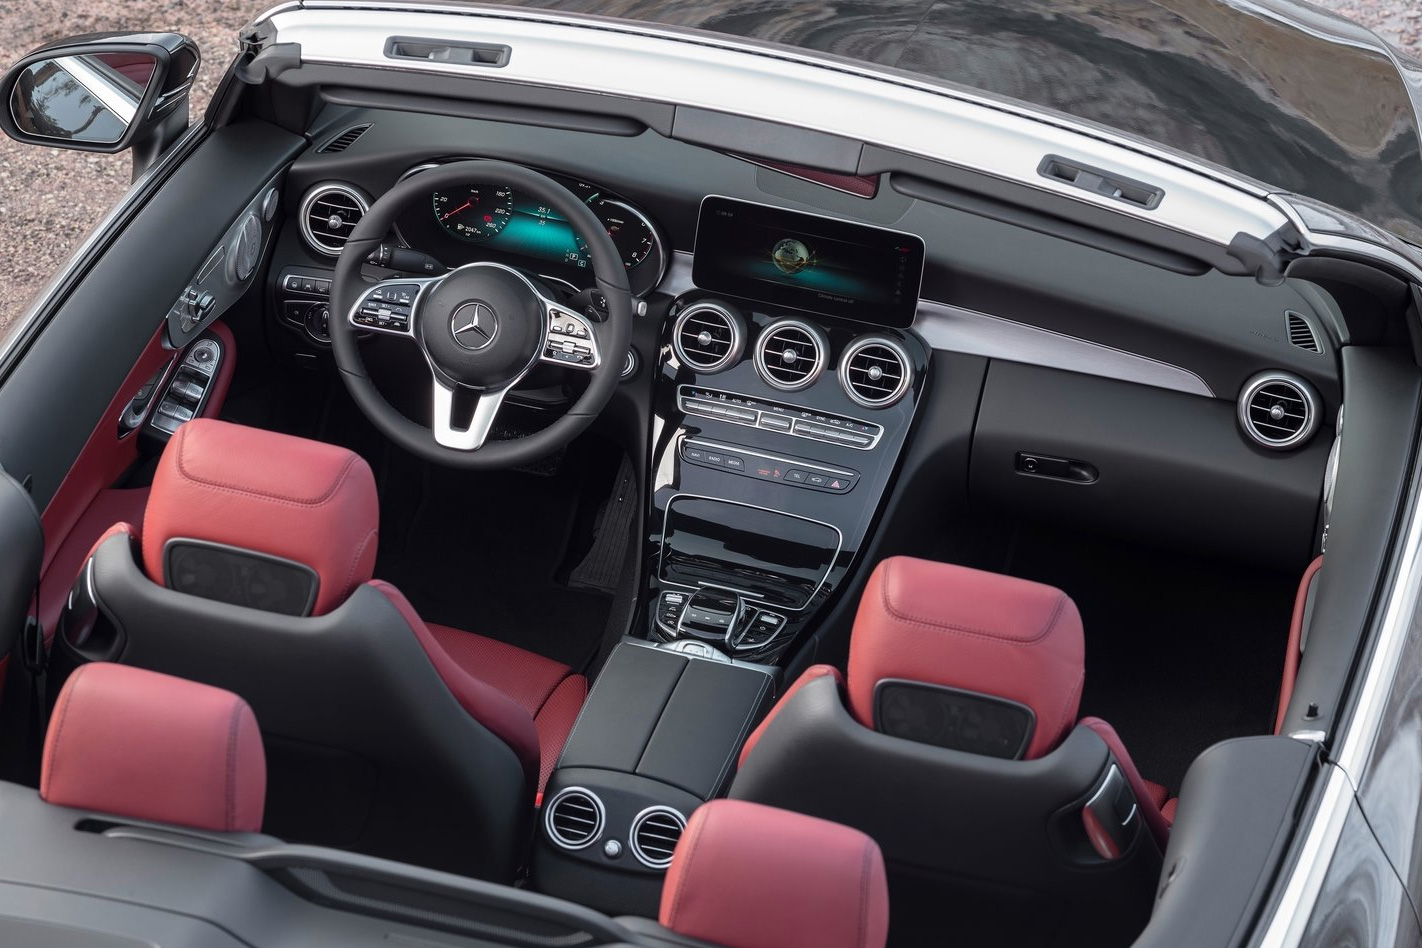 2019 Mercedes Benz C Class Coupe And Cabriolet Gain Mild Hybrid Tech